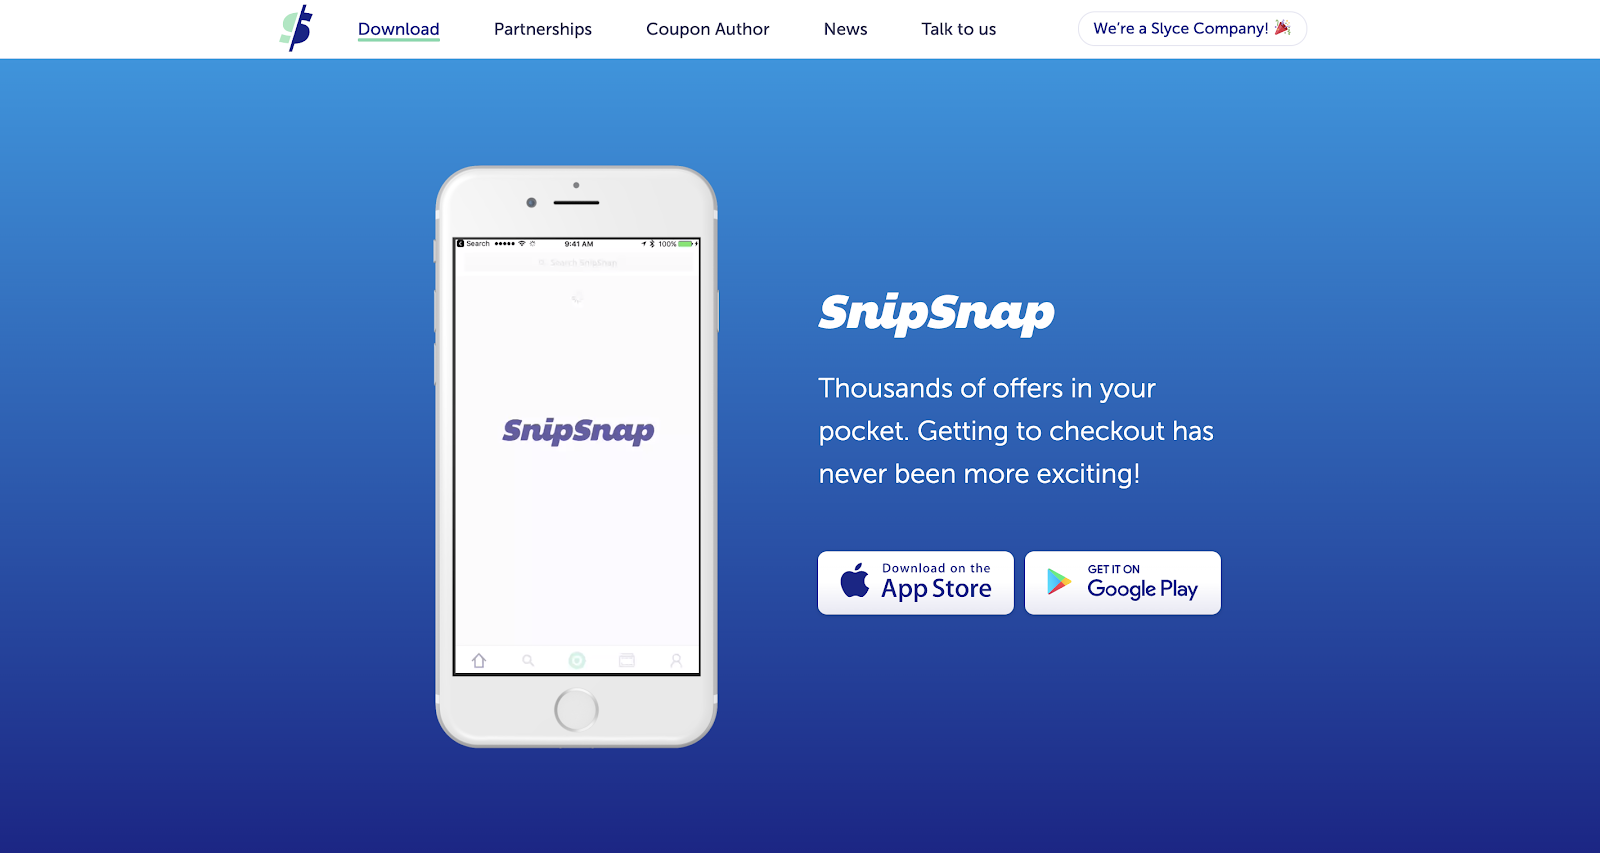 Save Money with Coupons on SnipSnap